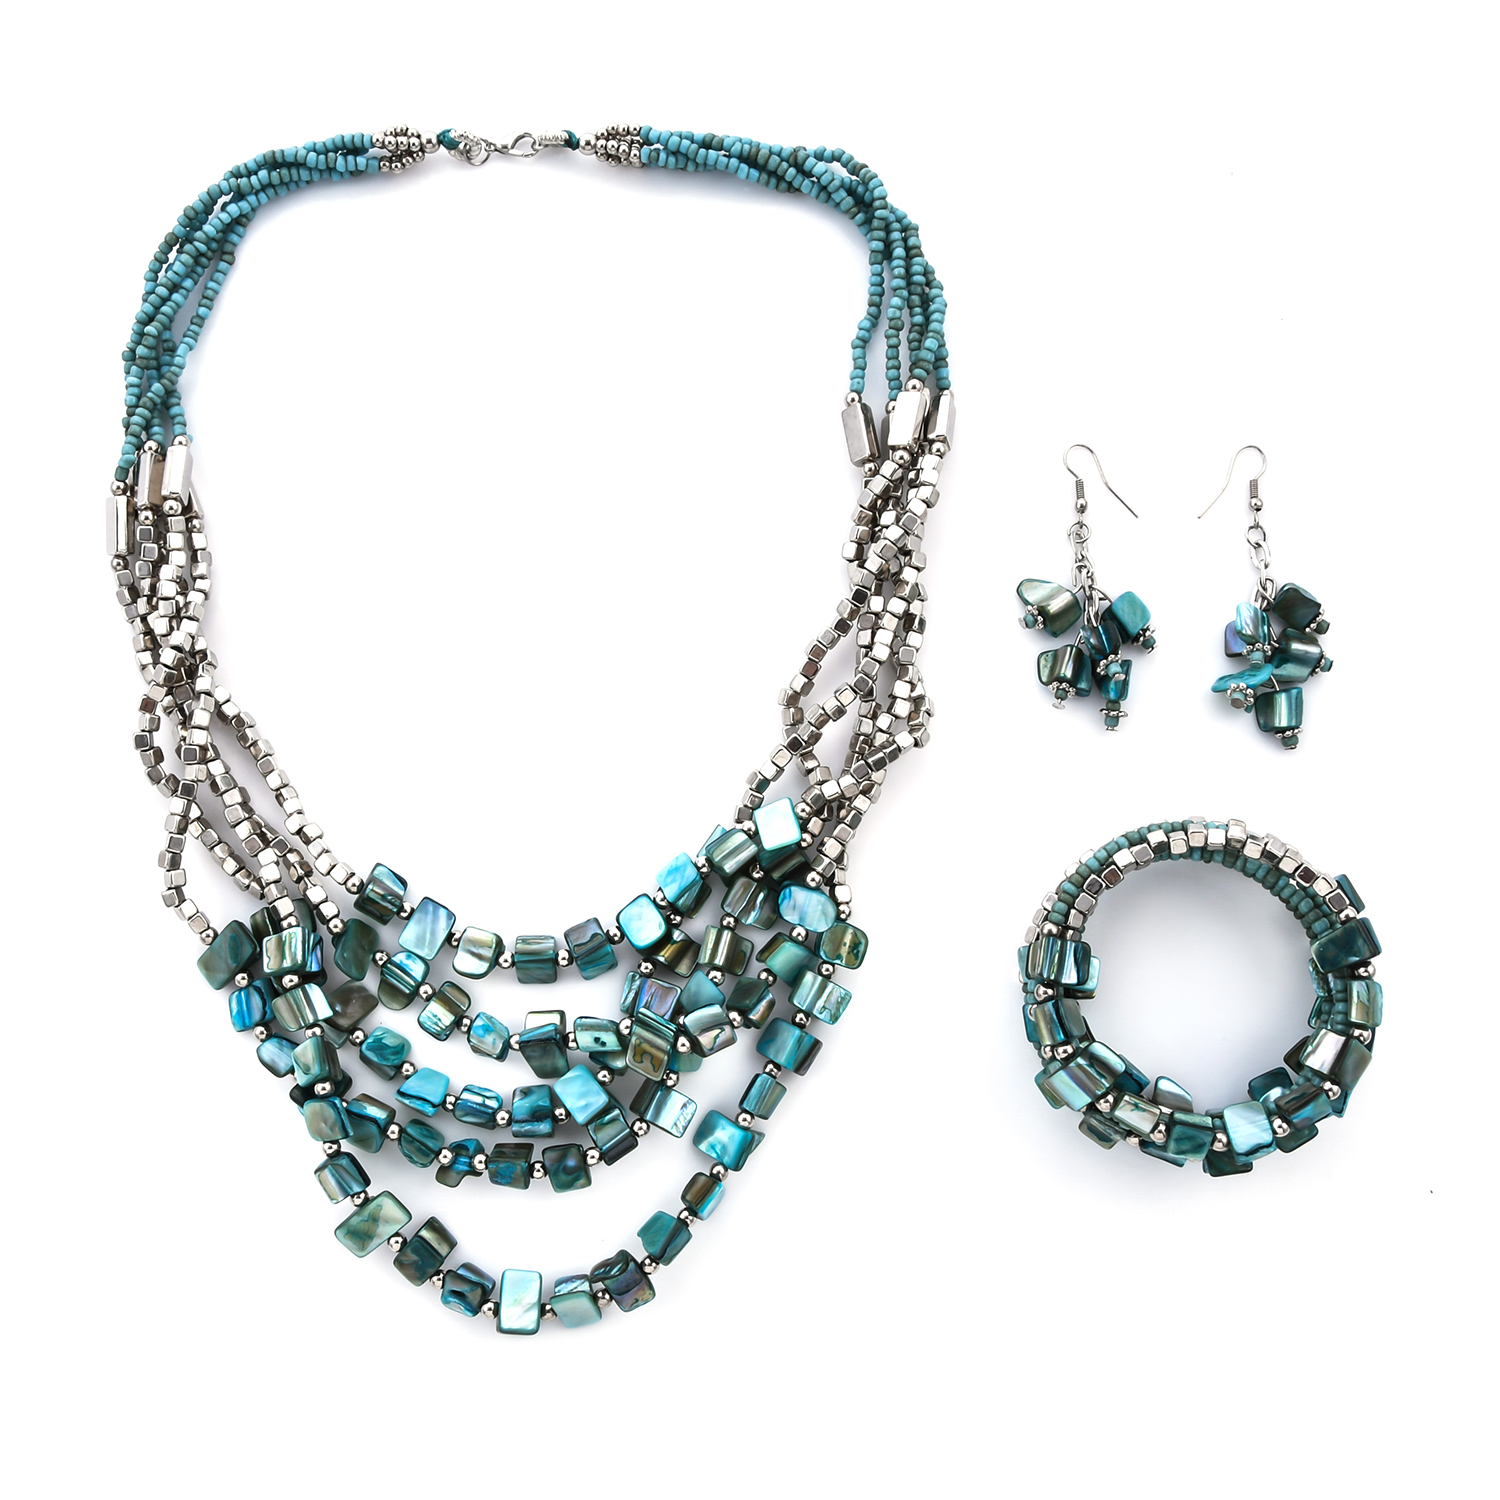 Blue Glass Beads Stainless Steel Earrings, Bracelet and Necklace